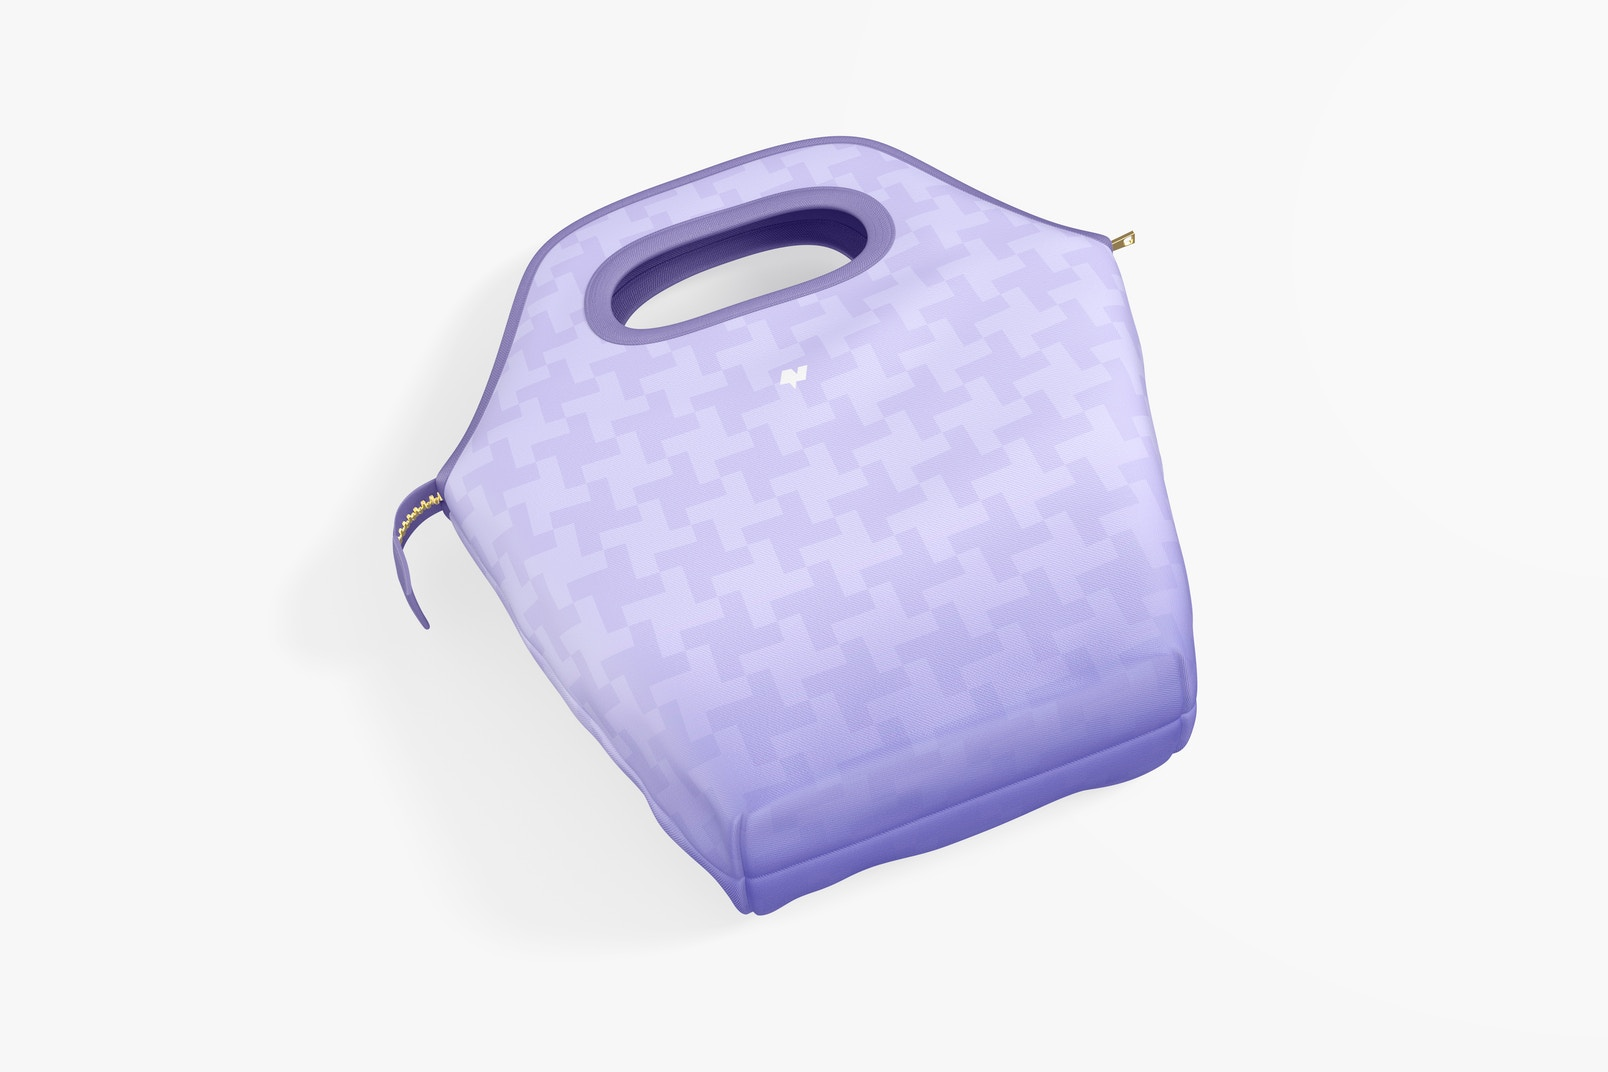 Lunch Bag Mockup, Top View